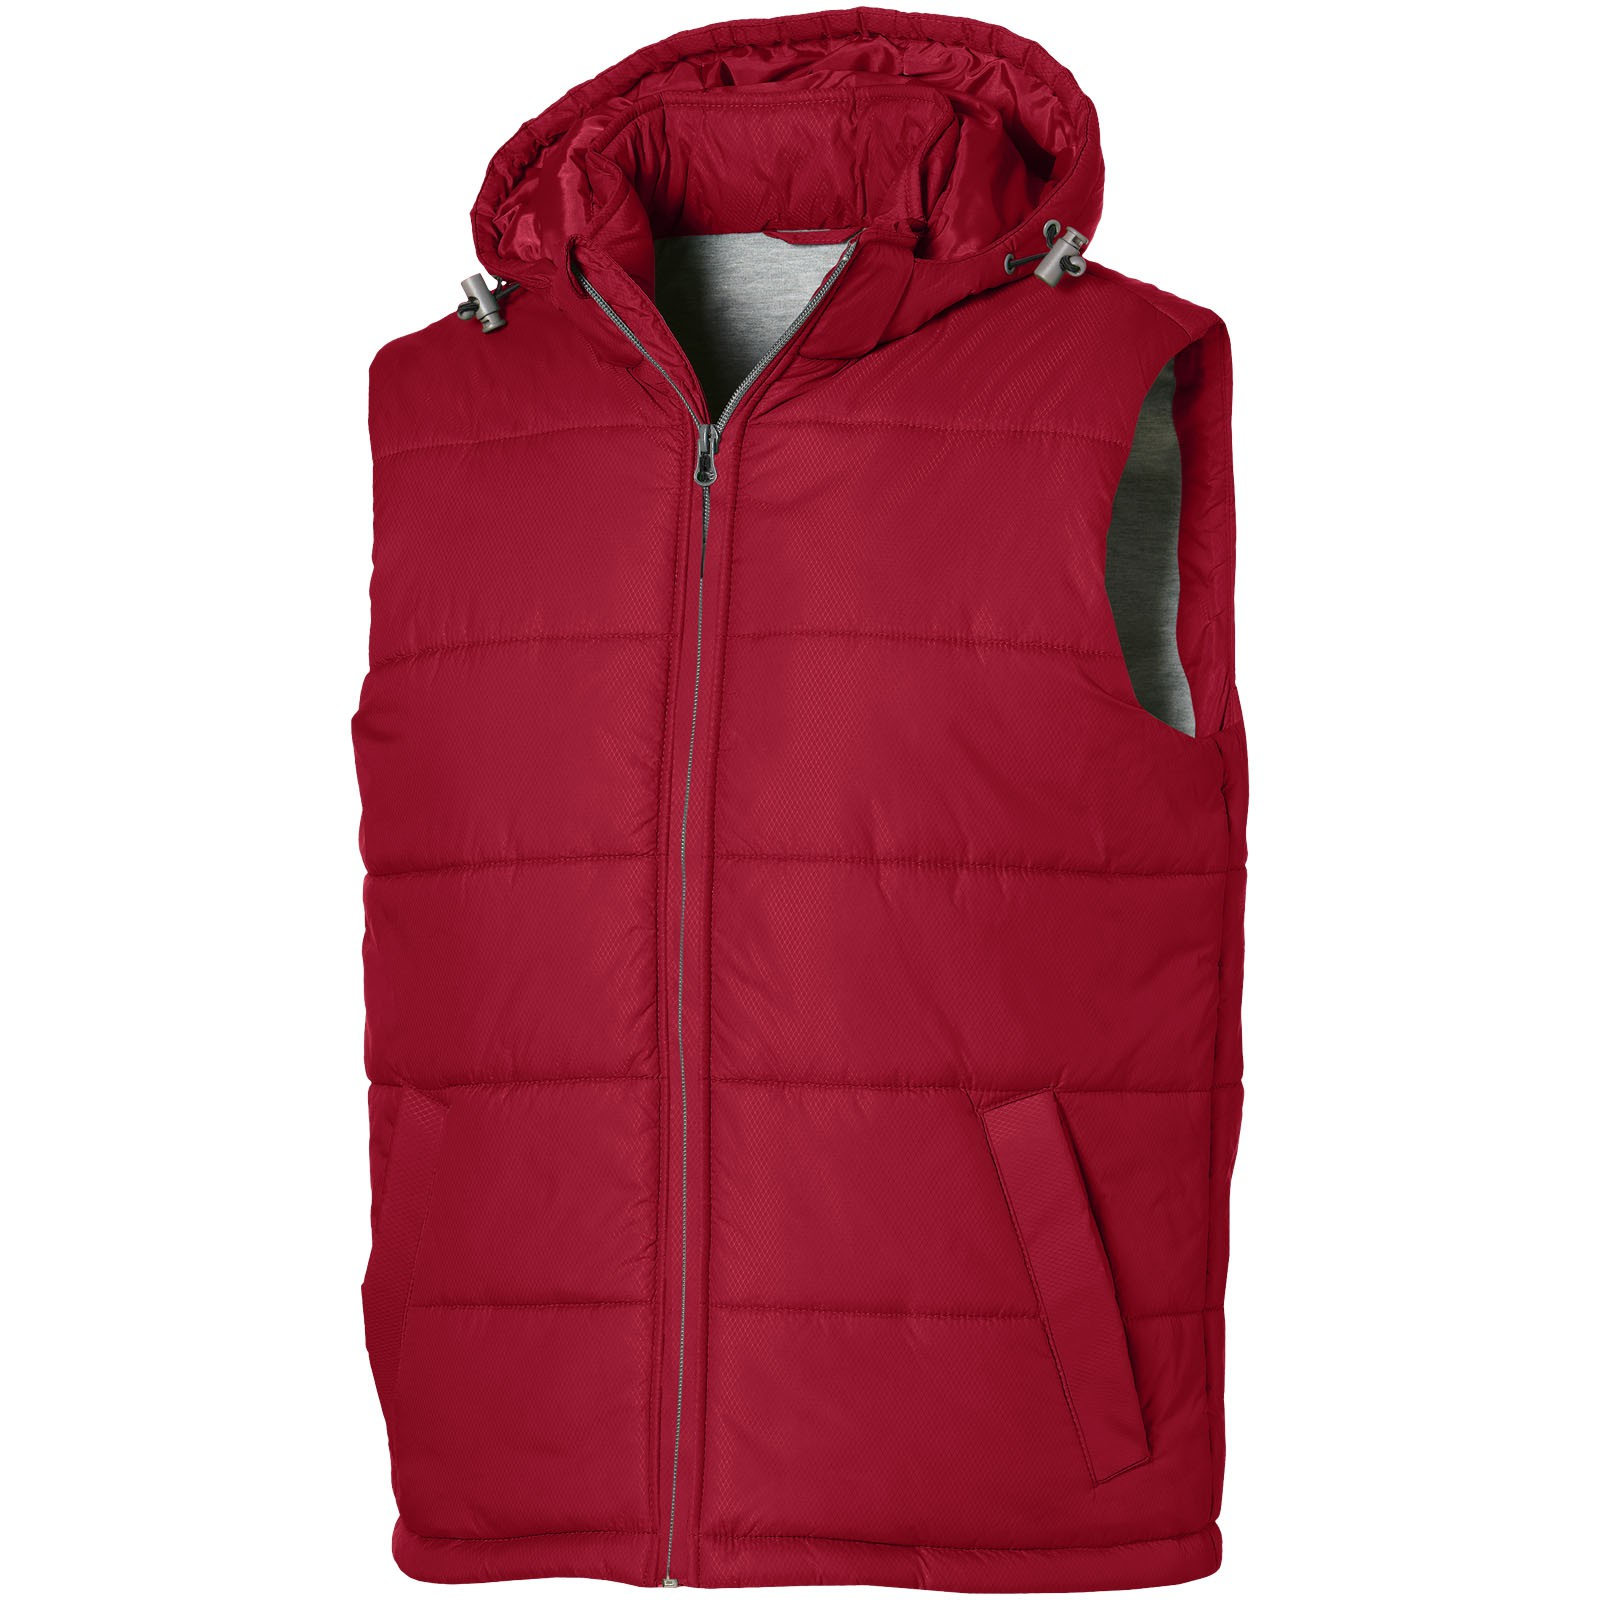 Mixed Doubles bodywarmer, red, L (Vest)